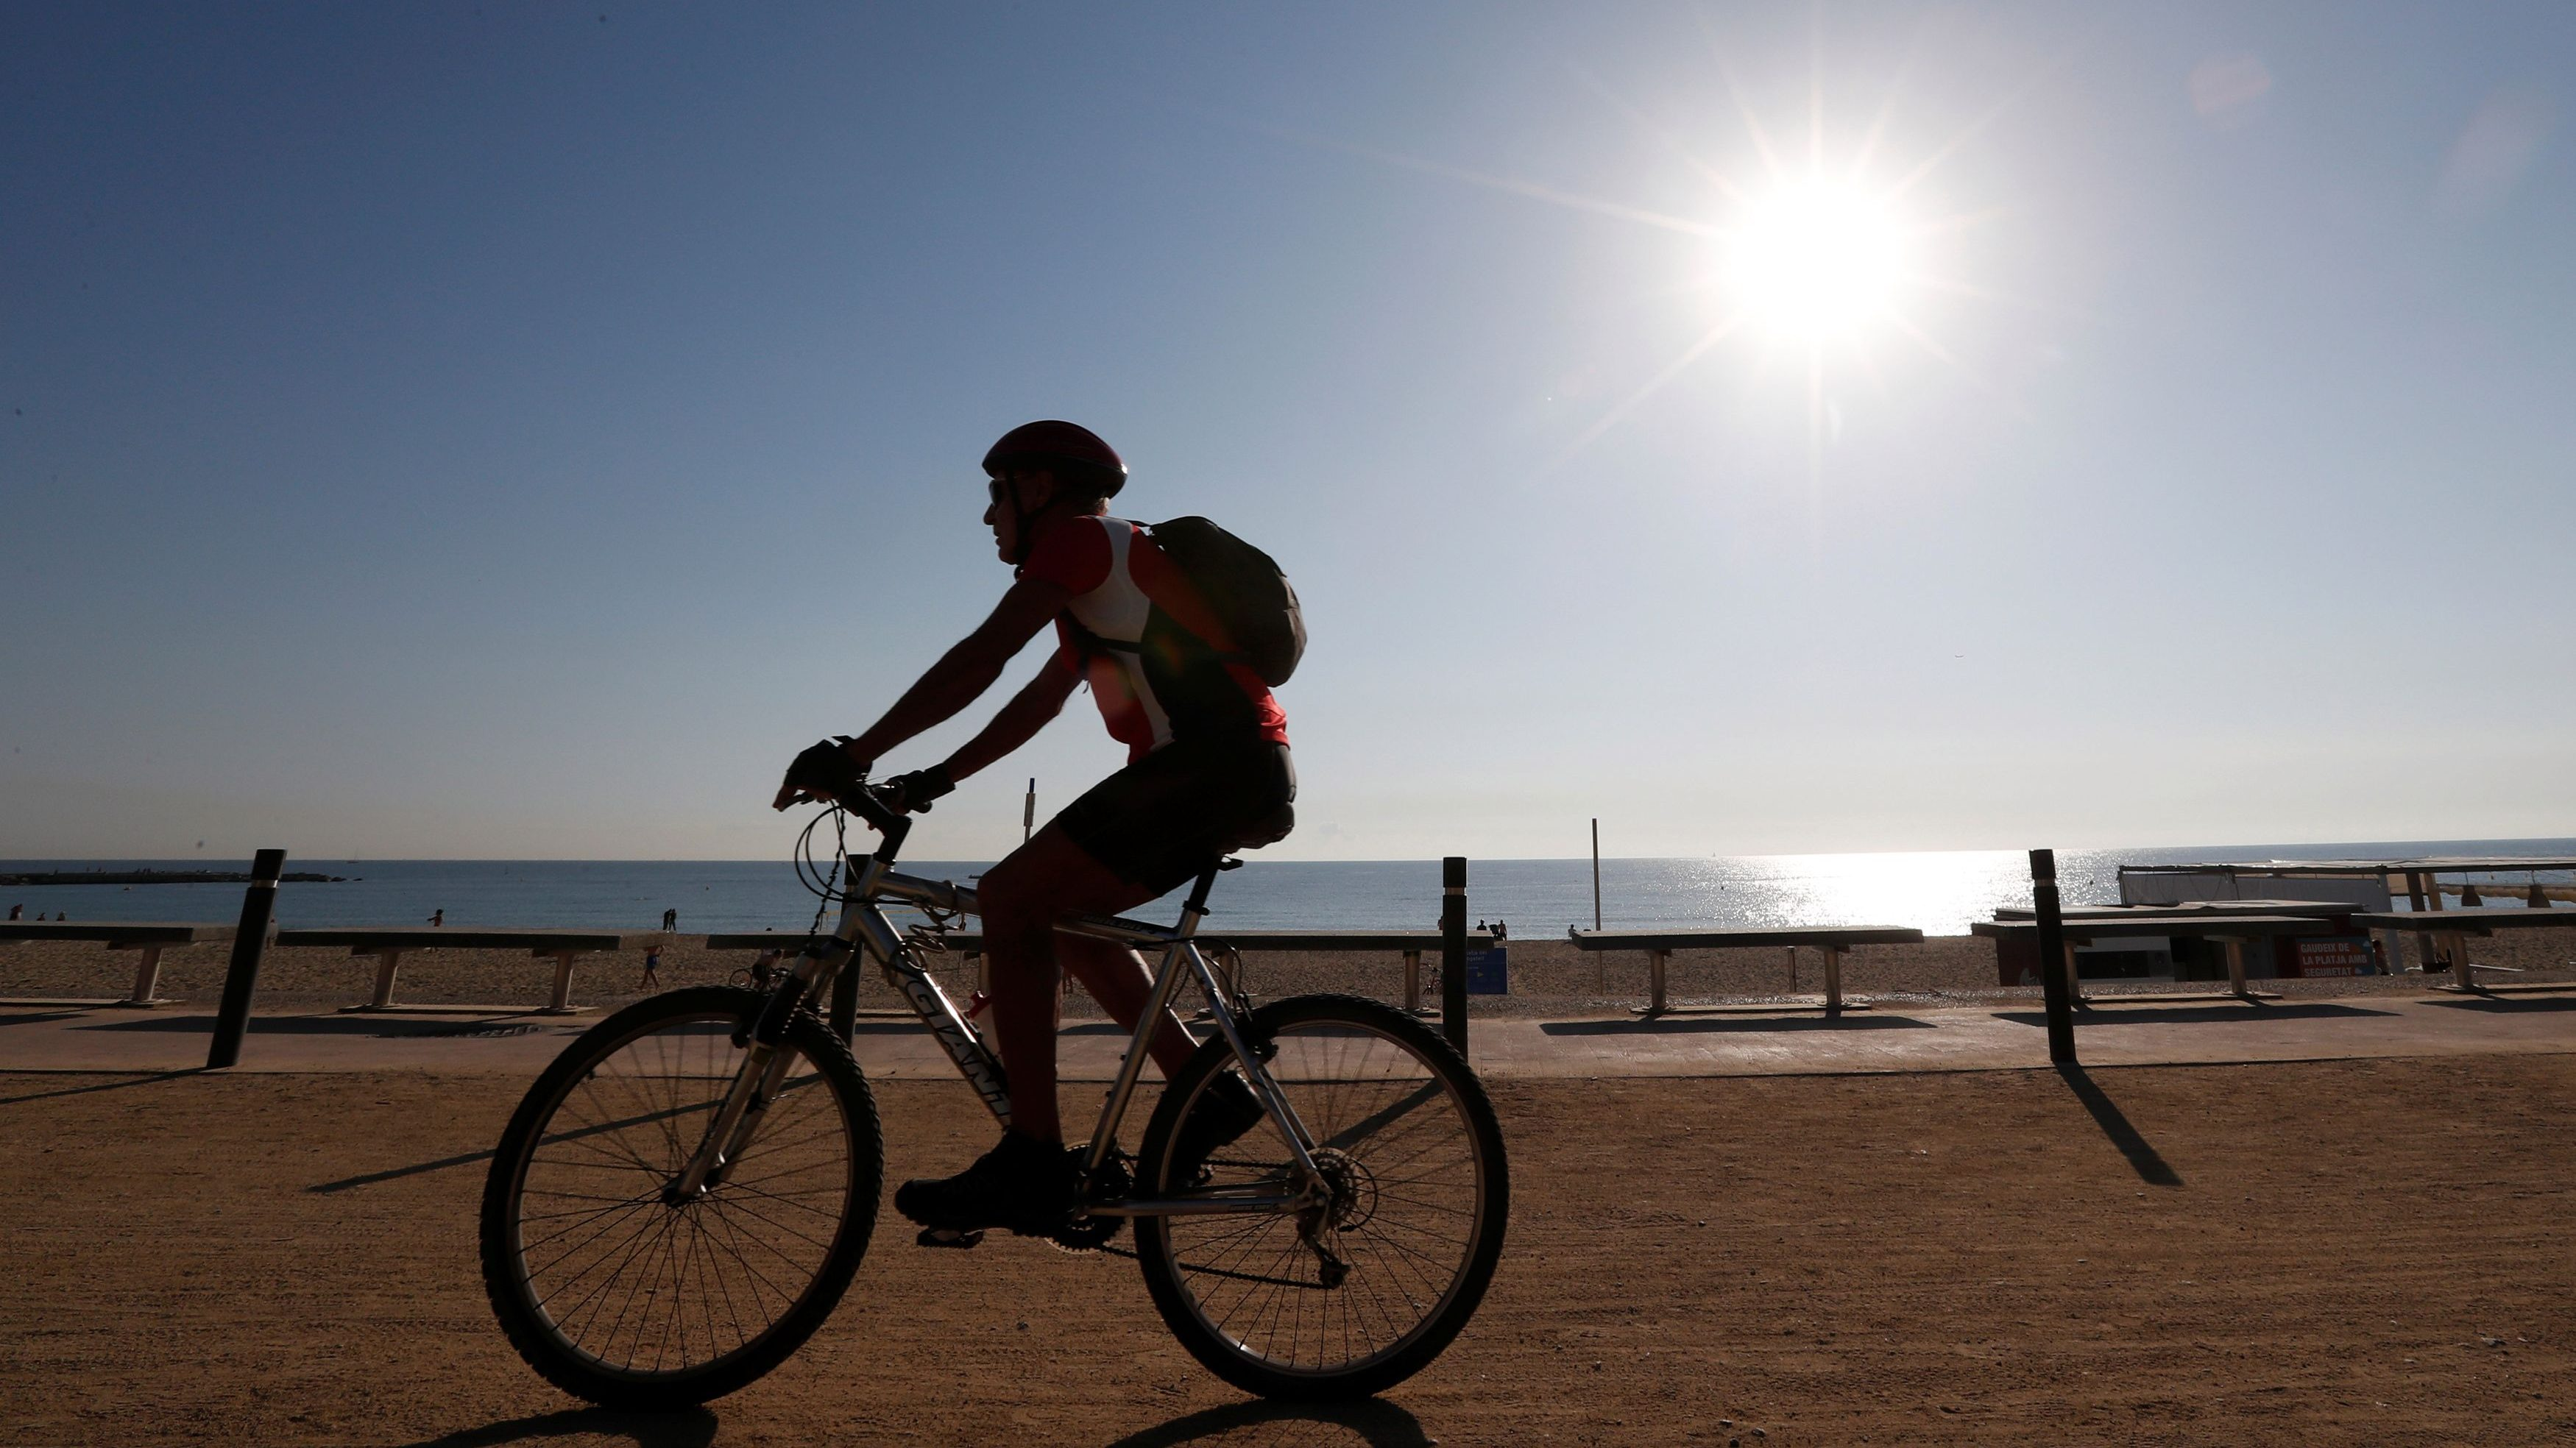 A man rides his bicycle on a hot day in Barceloneta beach in Barcelona